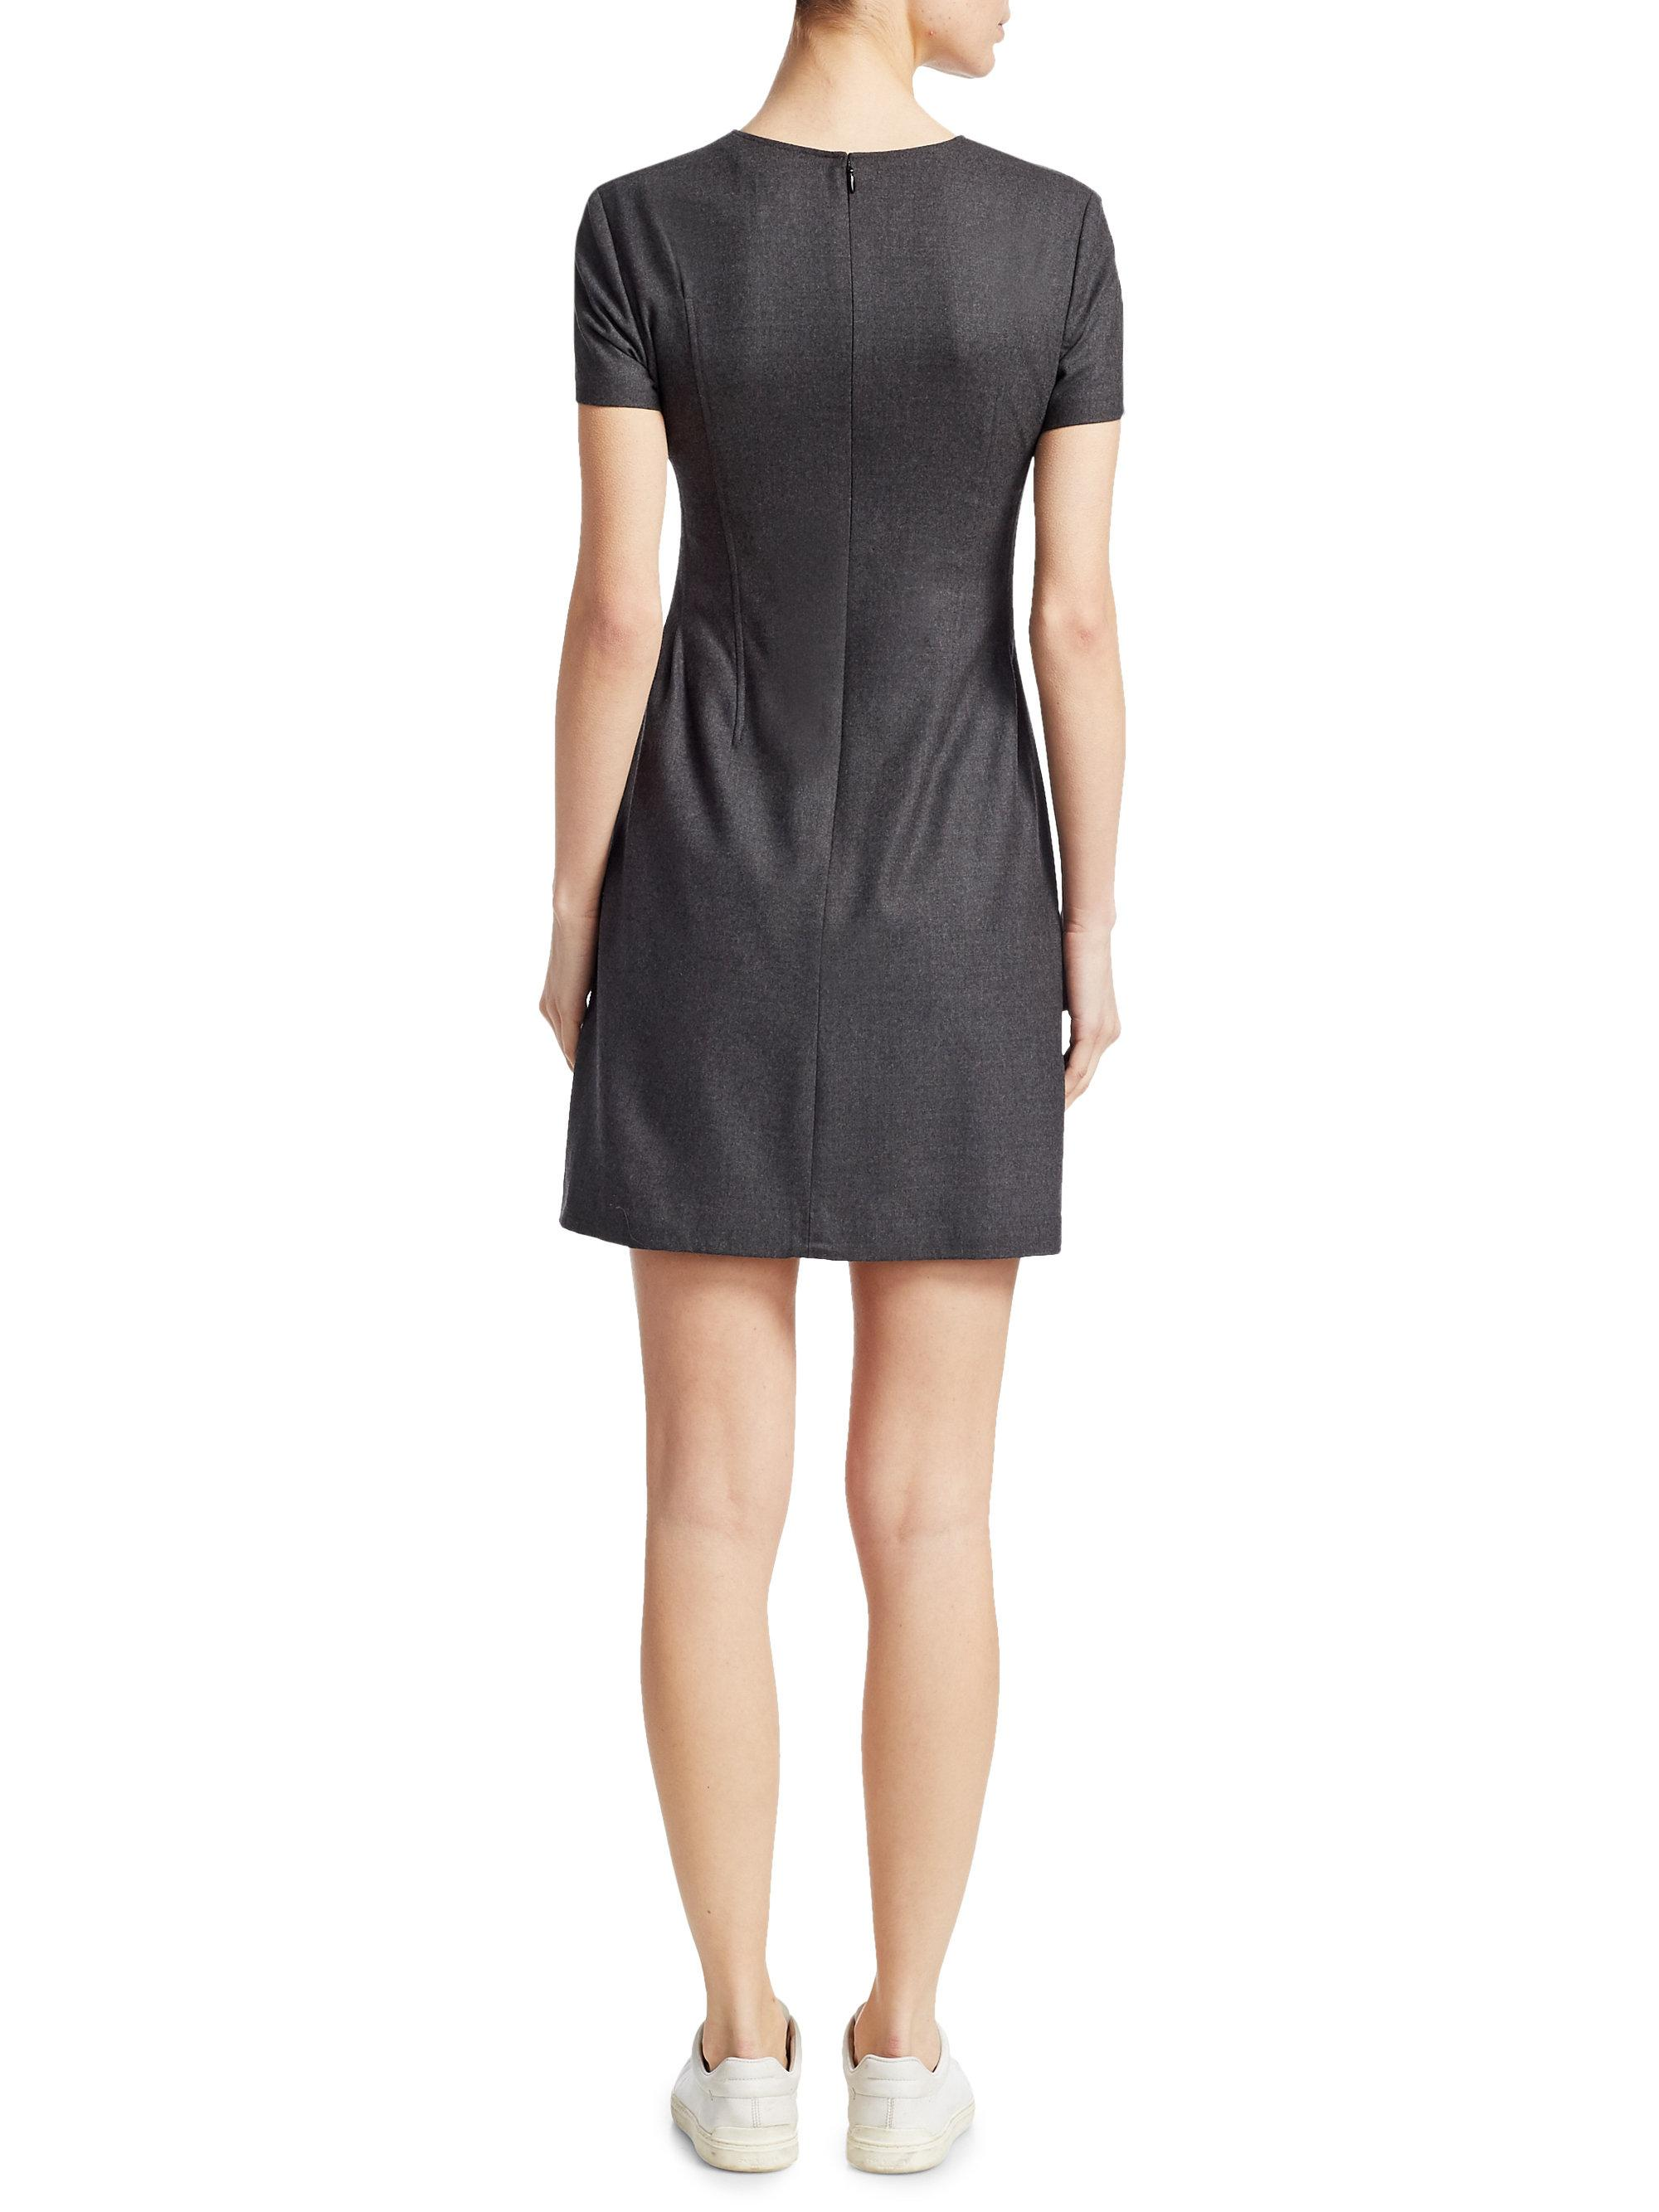 fc04d8b578e Gallery. Previously sold at  Saks Fifth Avenue · Women s T Shirt Dresses